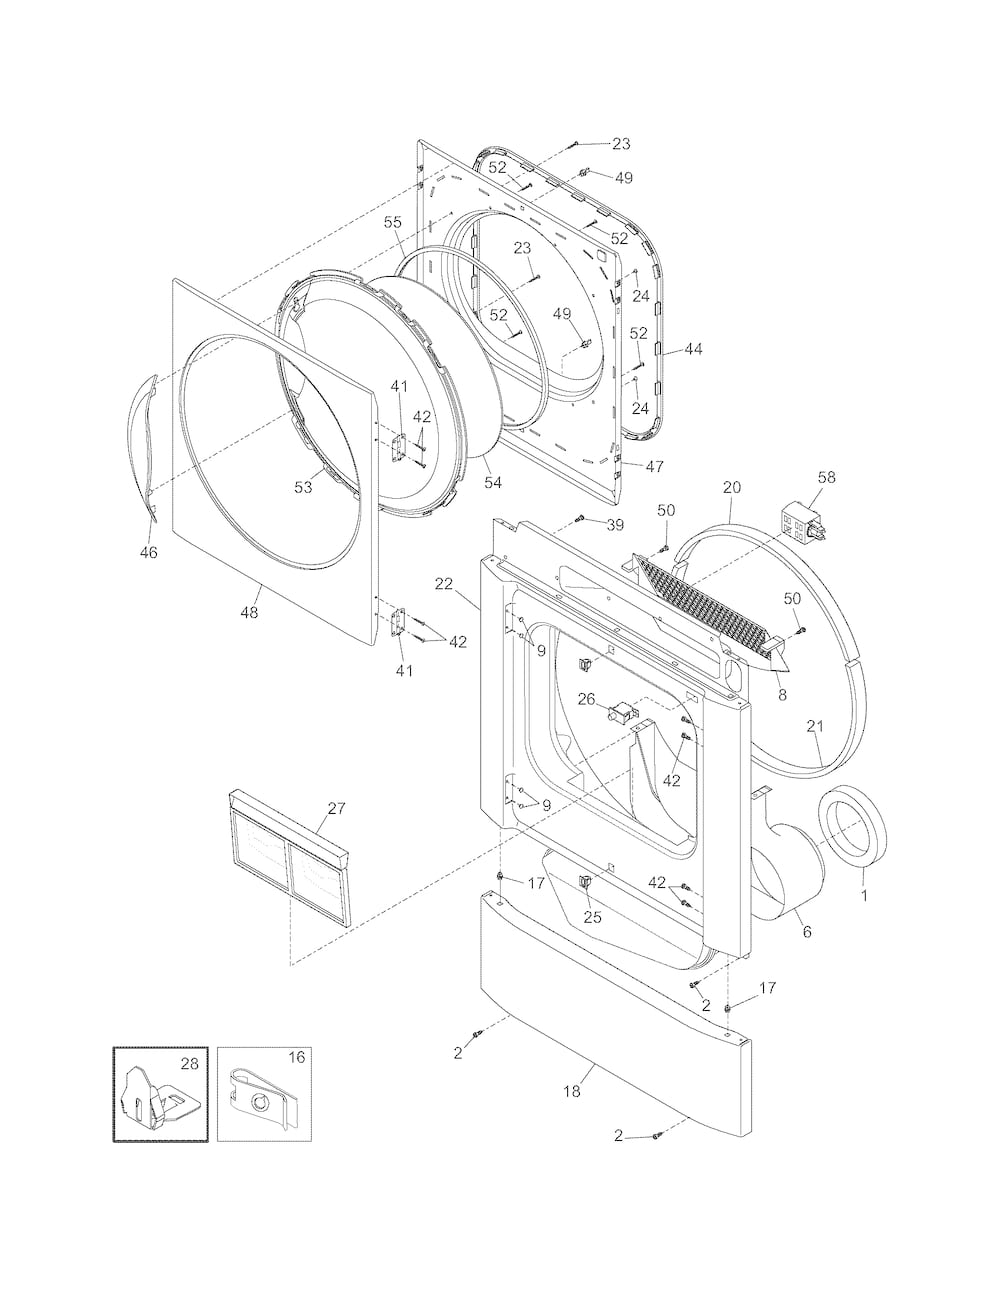 hight resolution of kenmore 80 series dryer parts diagram